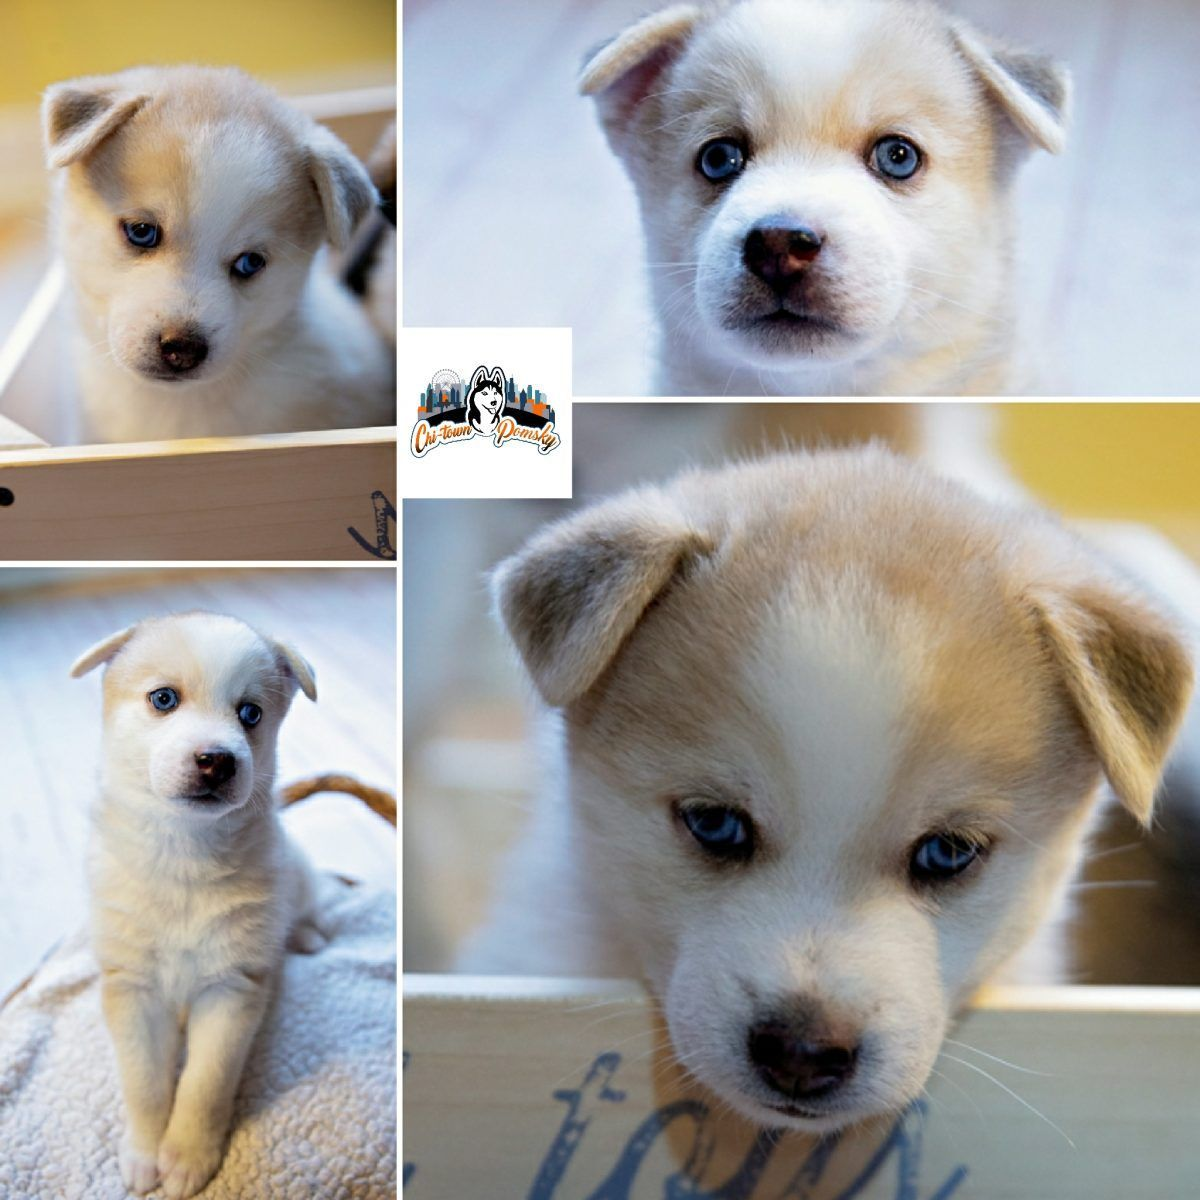 Cute Puppies For Sale Online At Vip Puppies We Make It Easy For You To Find Cute Puppies For Sale Online Showcasing A Puppies For Sale Puppies Cute Puppies